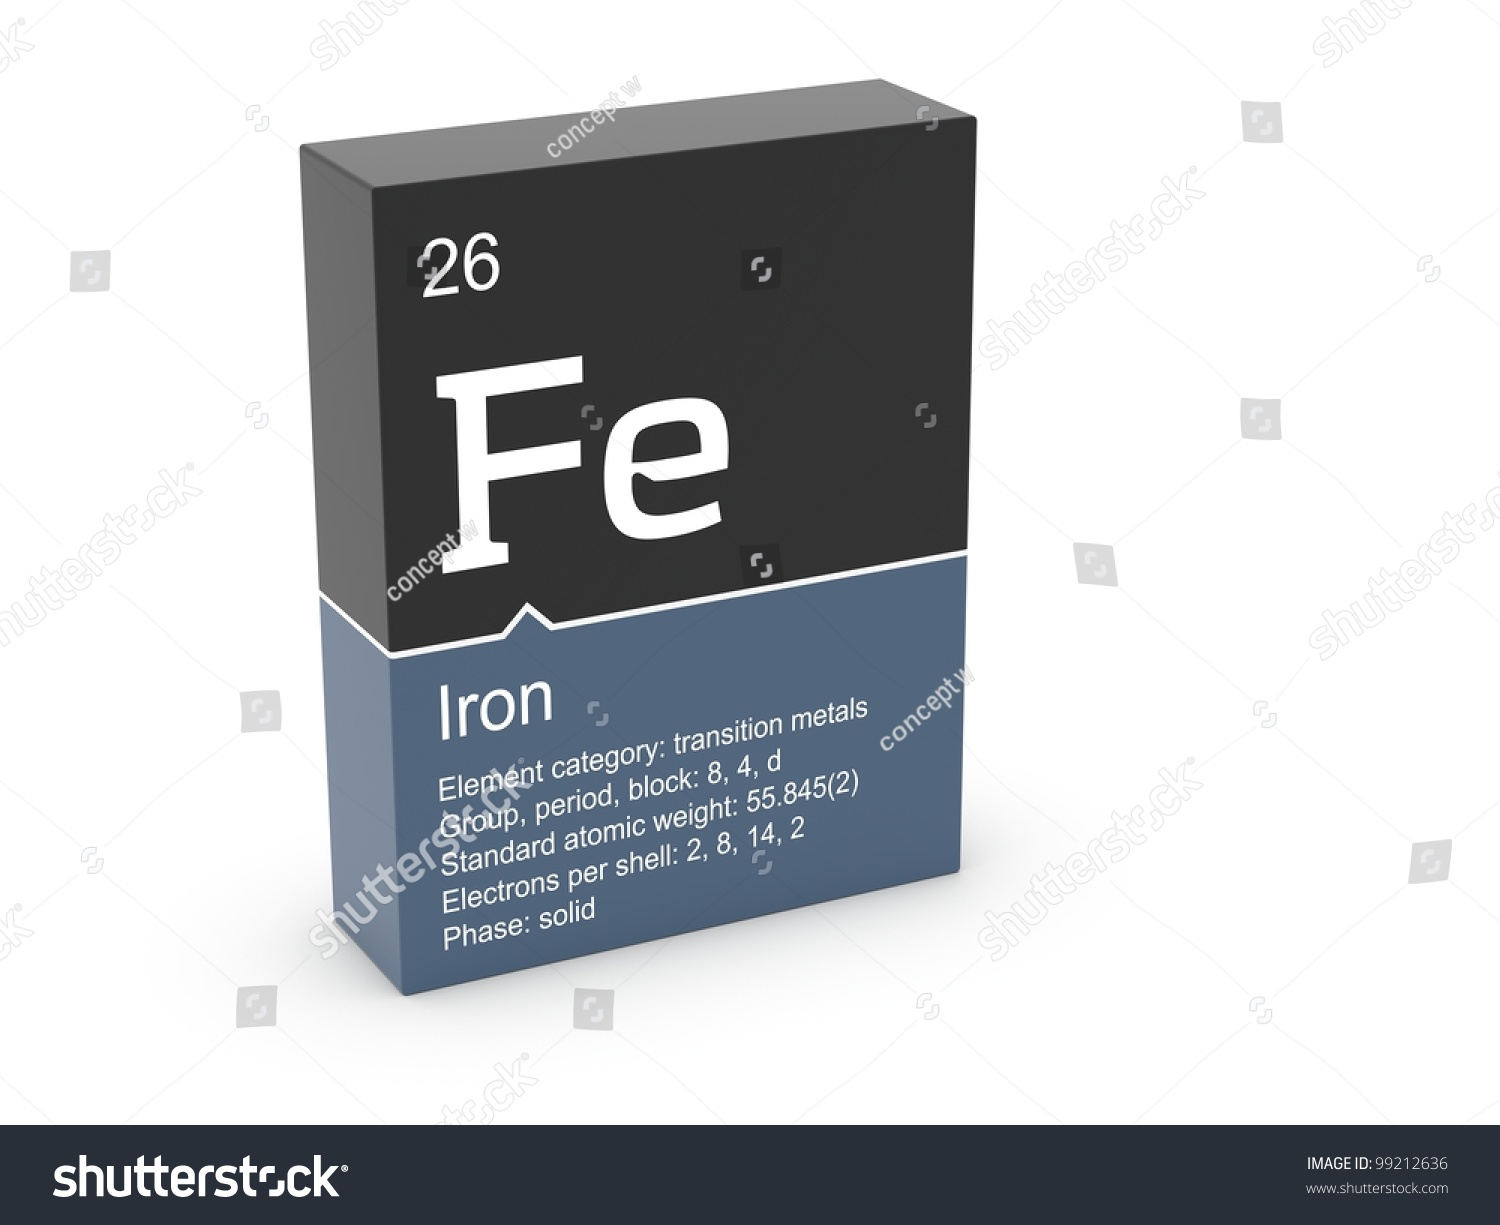 Iron from mendeleev 39 s periodic table stock photo 99212636 shutterstock - Iron on the periodic table ...